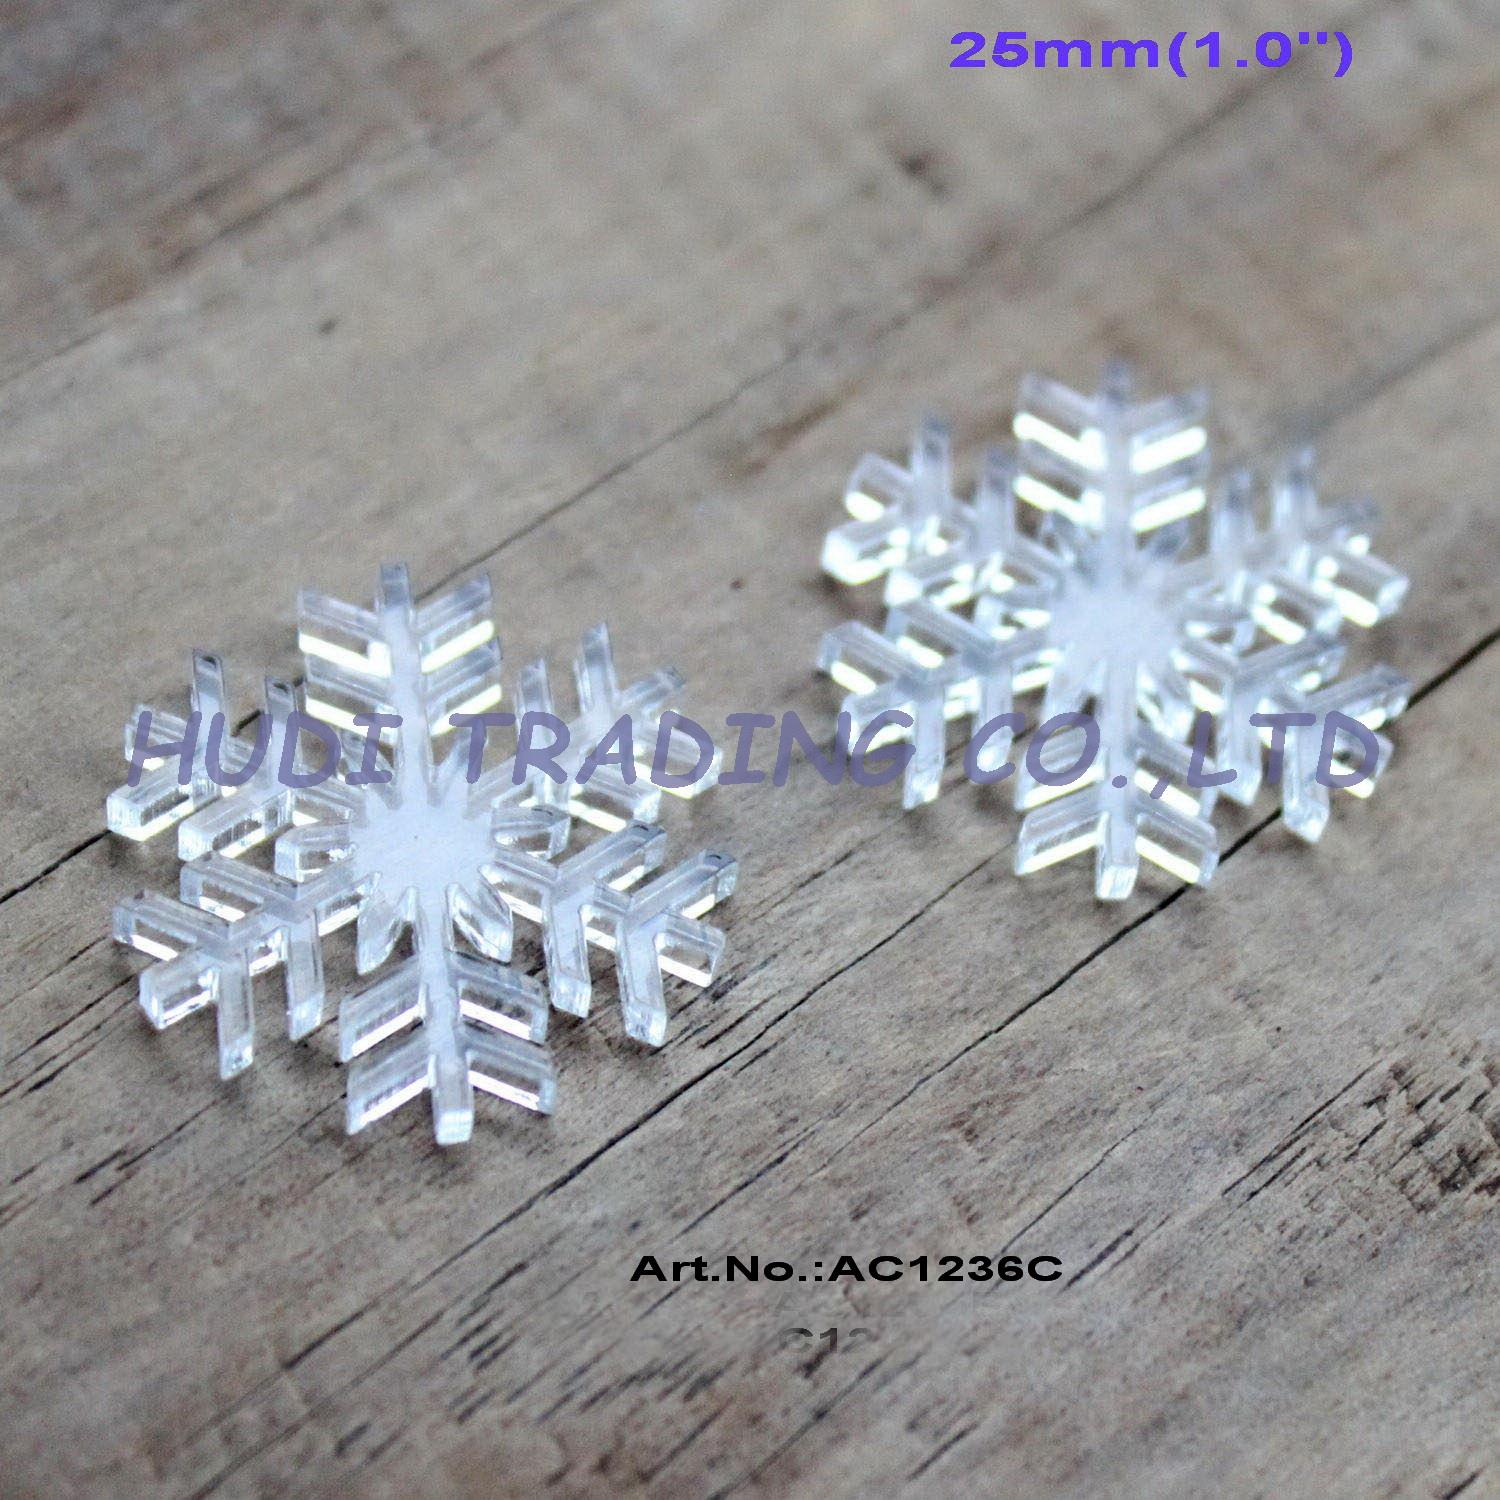 Clear acrylic fillable ornaments -  60pcs Lot 25mm Assorted Clear Acrylic Snowflakes Christmas Ornaments 1 Ac1236c